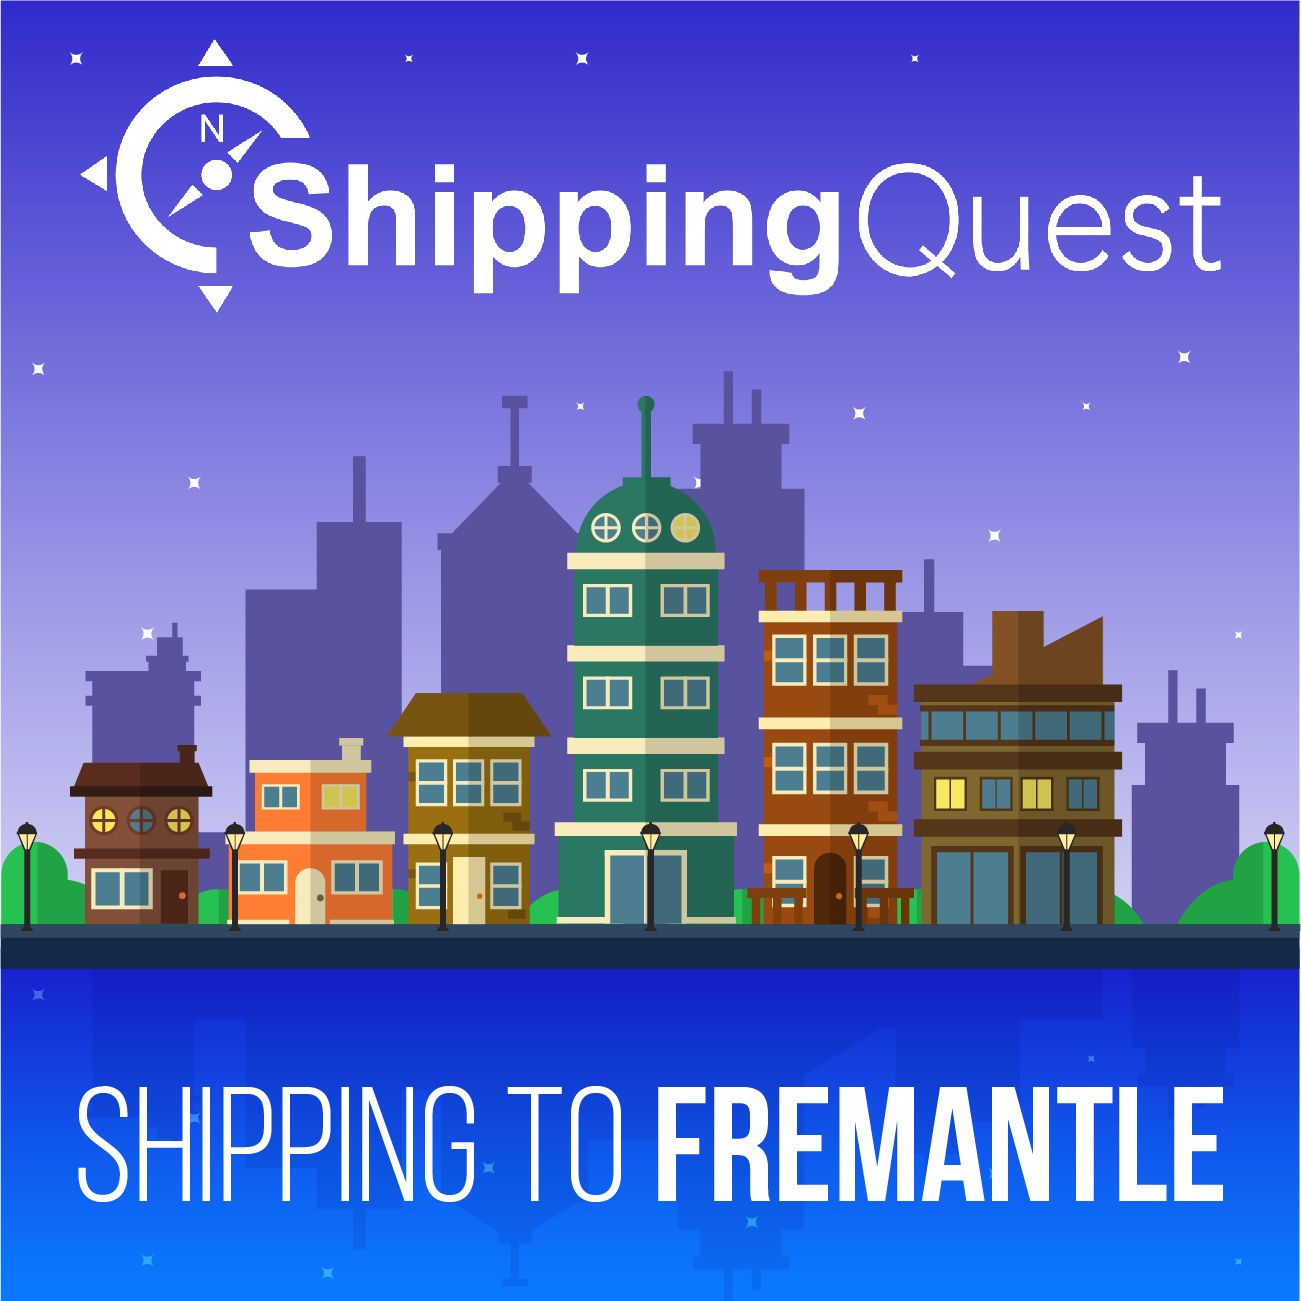 Shipping to Fremantle Fremantle, Ship, Ship quote